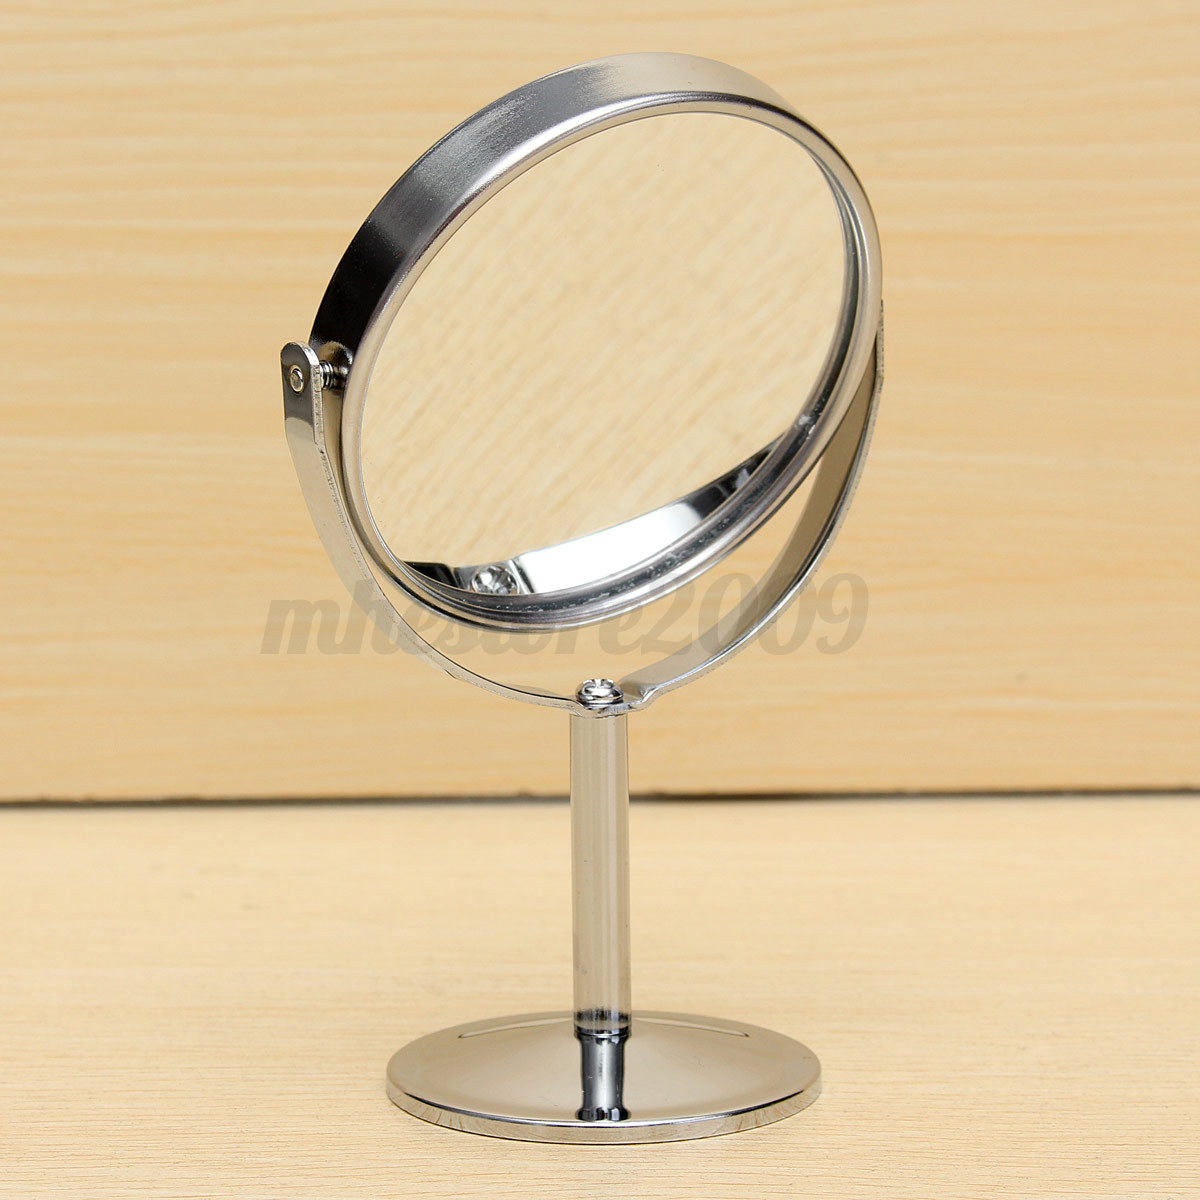 New Double Sided Chrome Round Magnifying Cosmetic Shaving